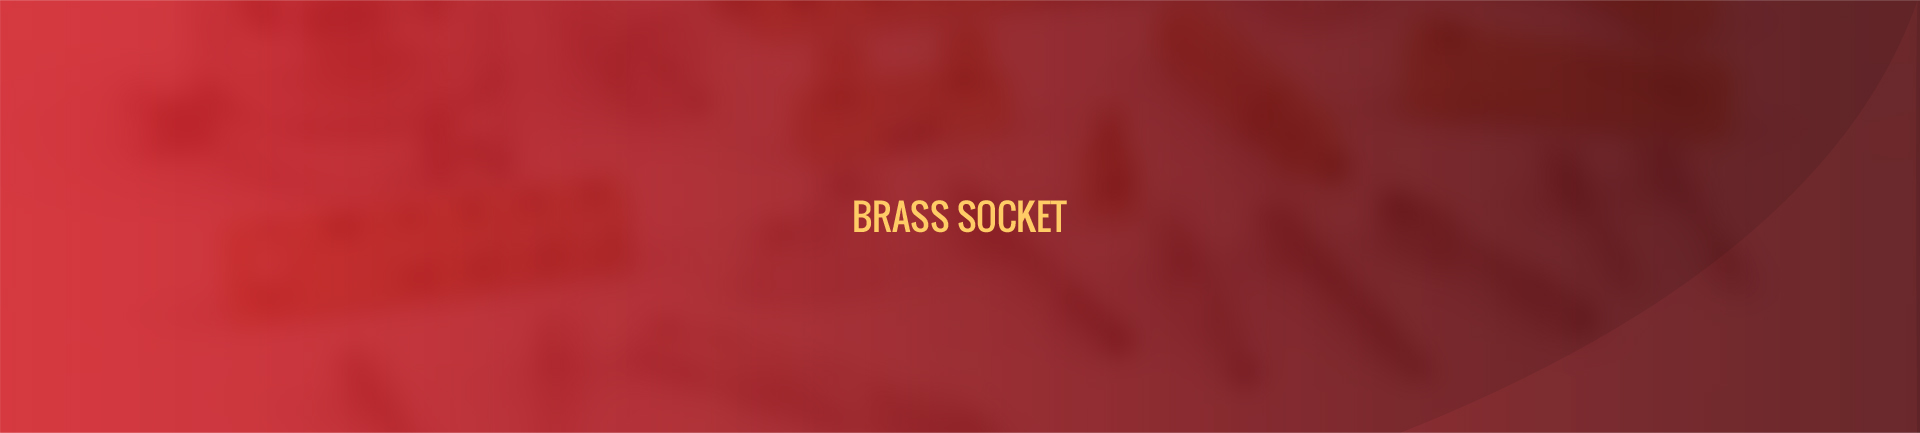 brass_socket-banner